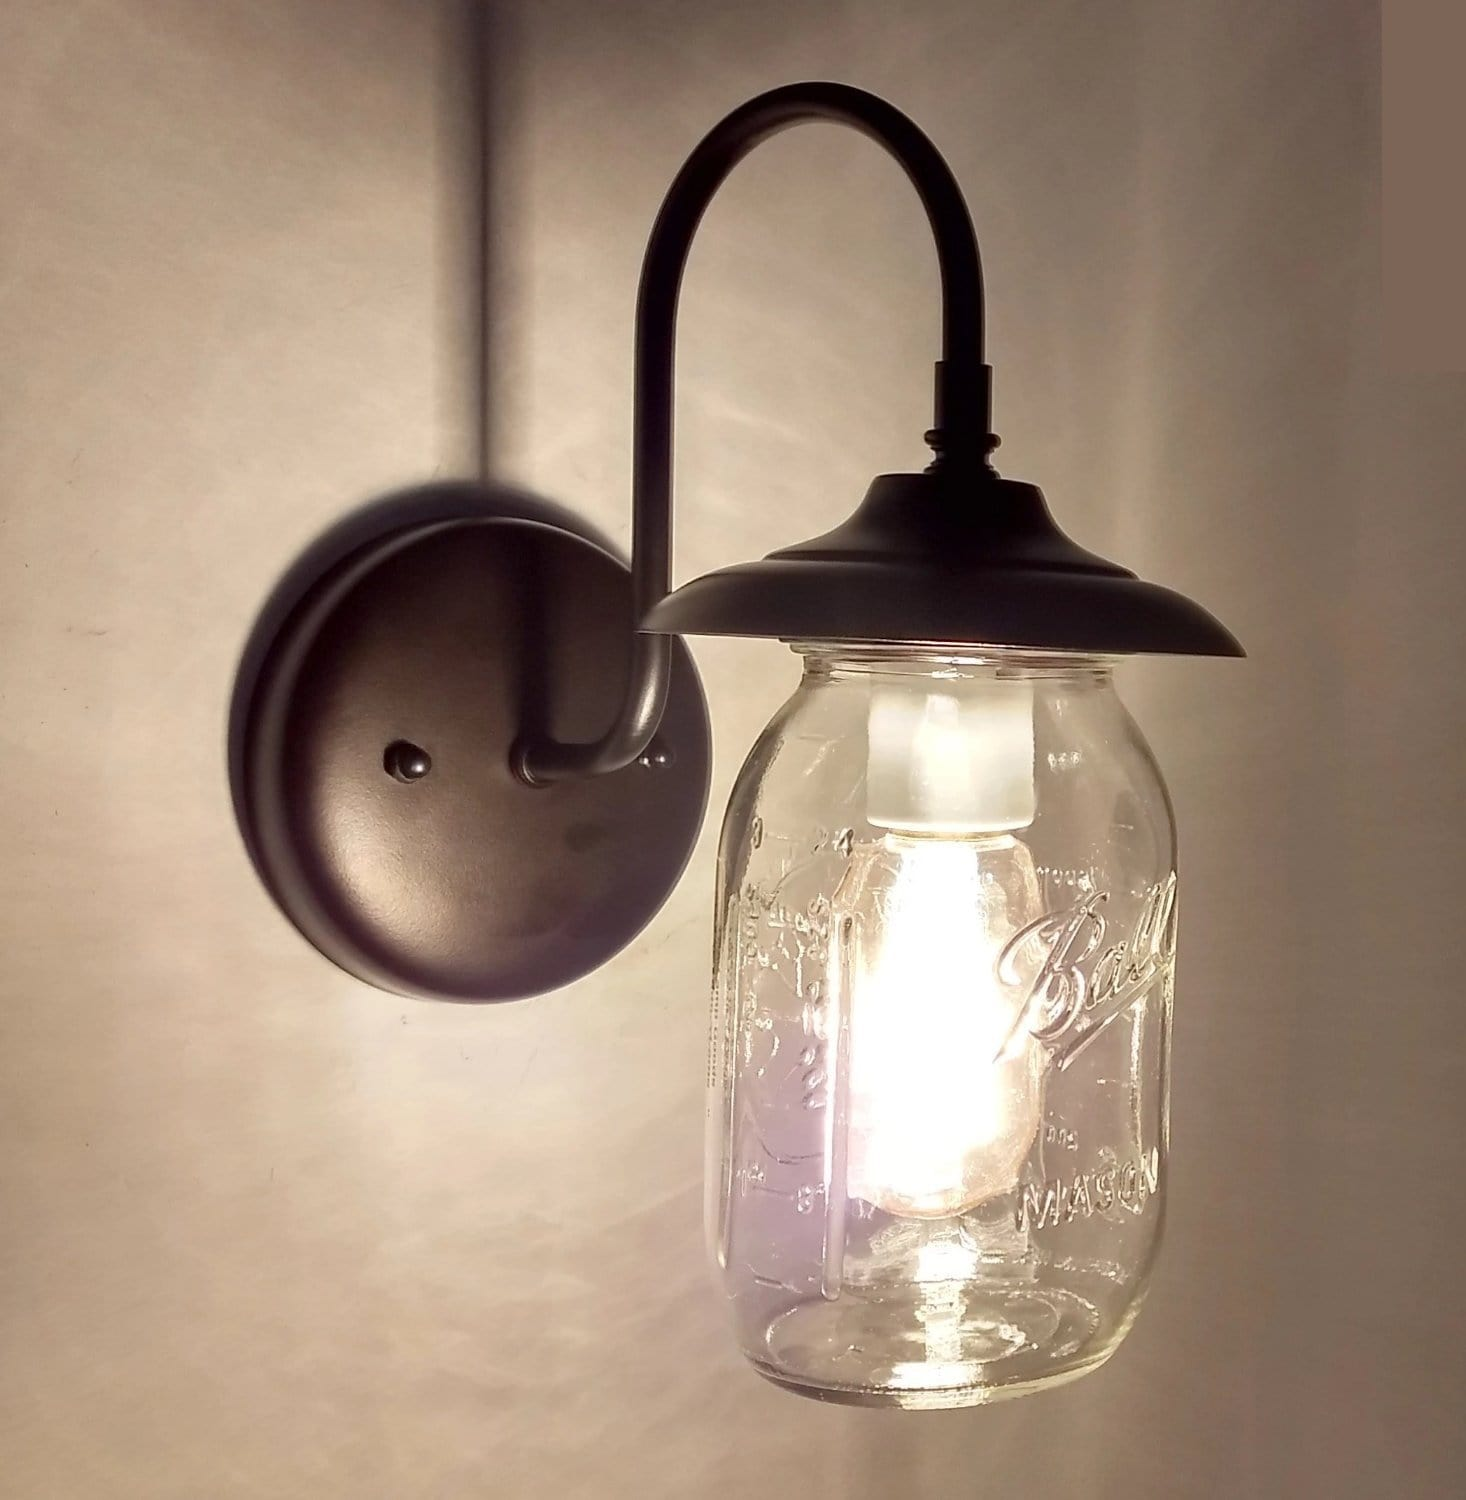 Mason jar exterior porch wall sconce light ball jar the lamp goods mason jar exterior porch wall sconce light ball jar arubaitofo Gallery